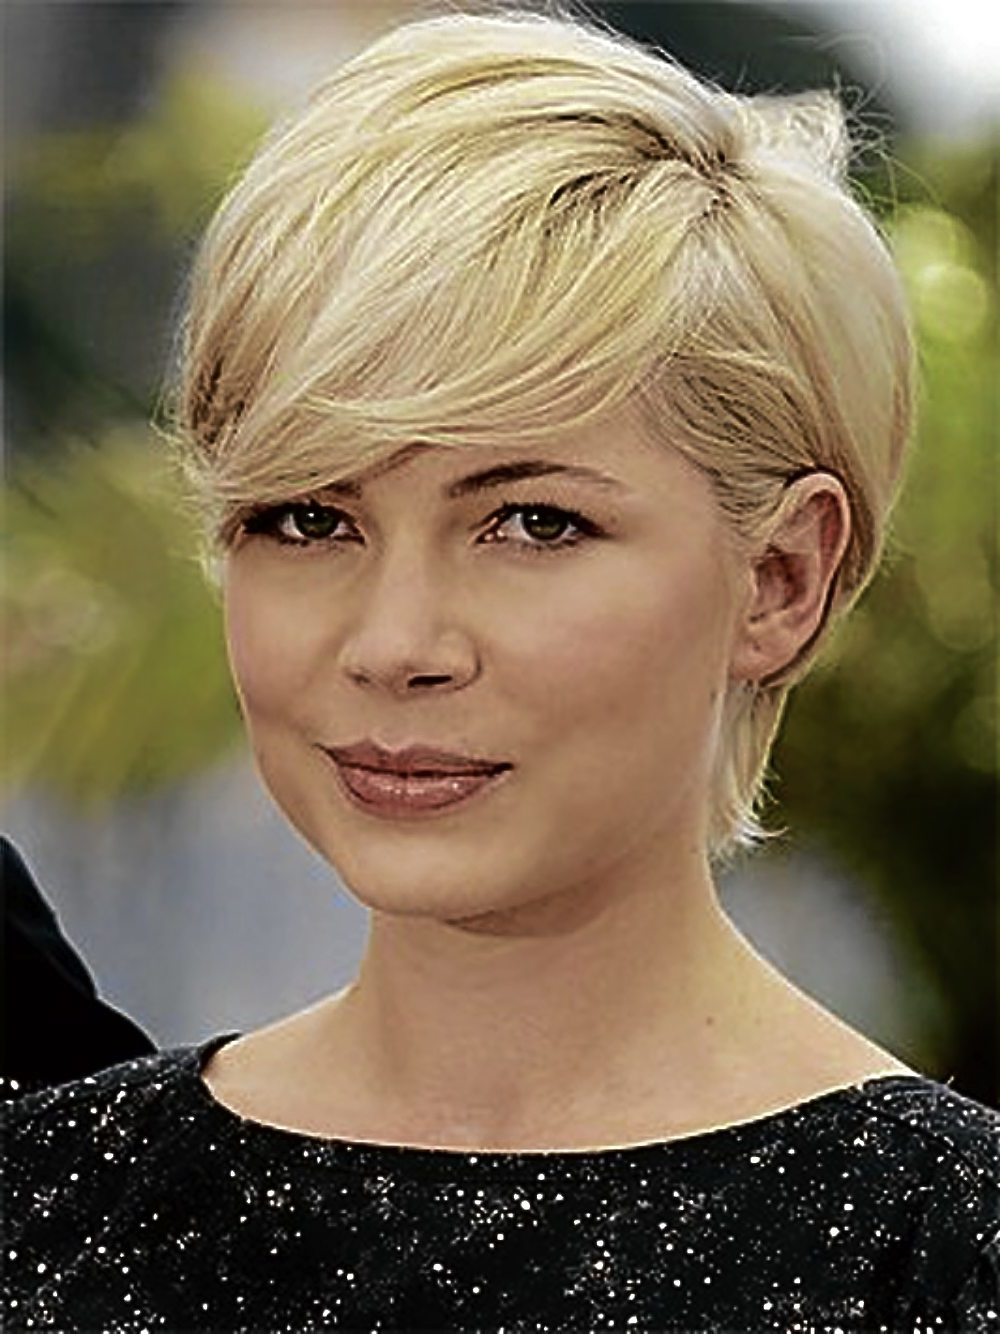 Short Pixie Haircuts For Thick Hair – Short And Cuts Hairstyles With Regard To Short Haircuts For Voluminous Hair (View 10 of 25)